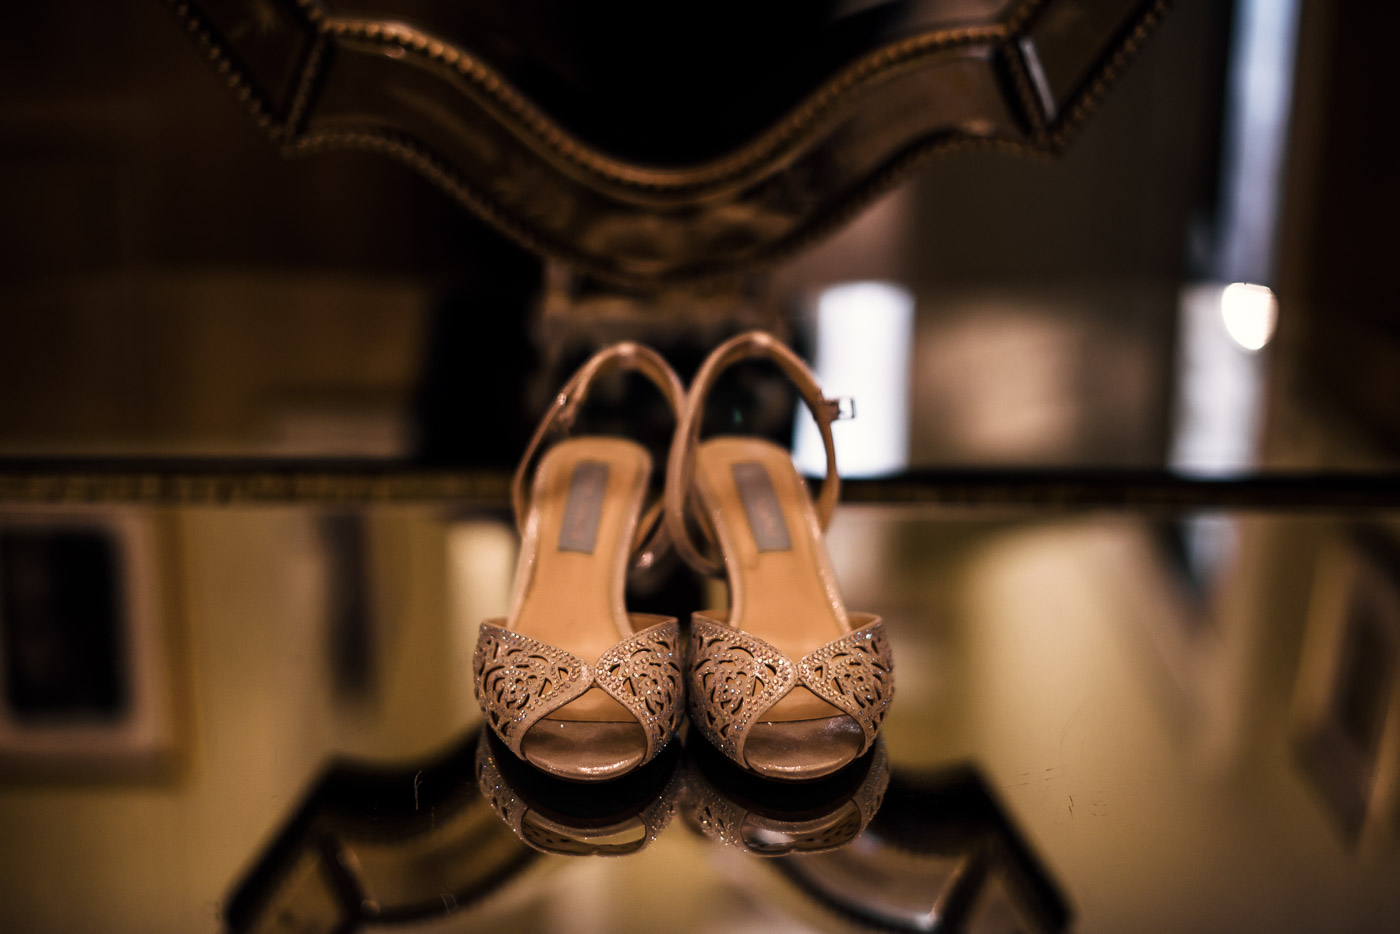 Brides wedding shoes reflected in a mirrored table at the Castle Green in Pasadena.